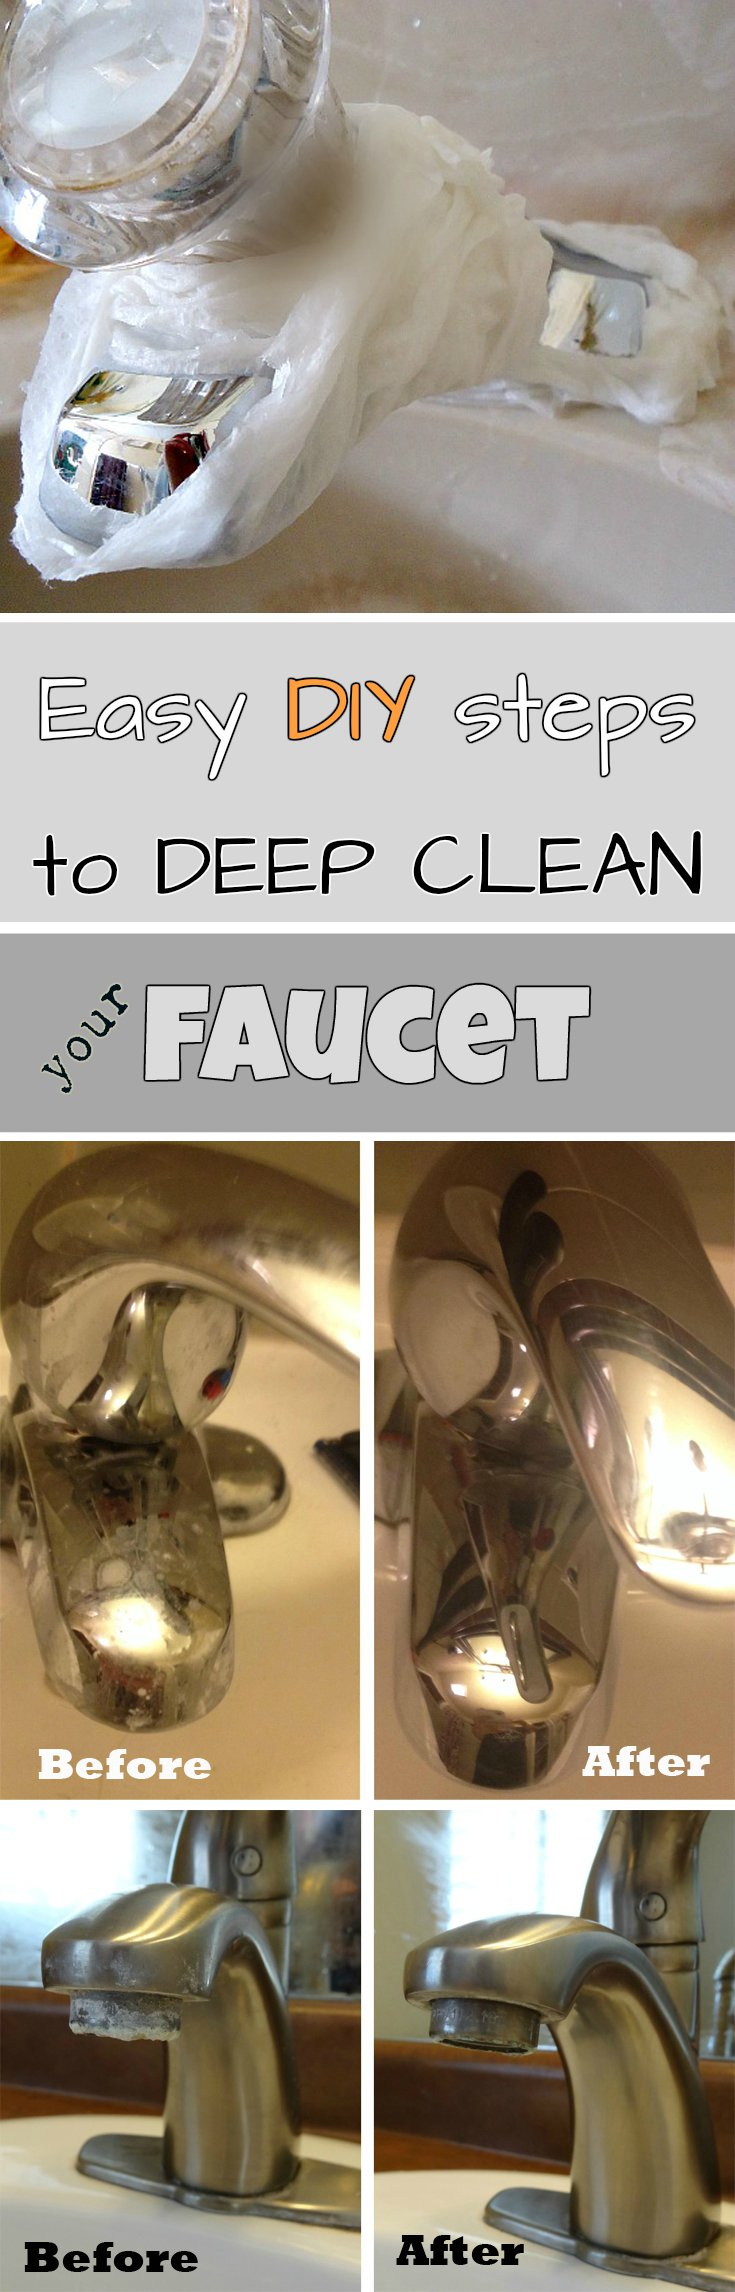 Easy Diy Steps To Deep Clean Your Faucet